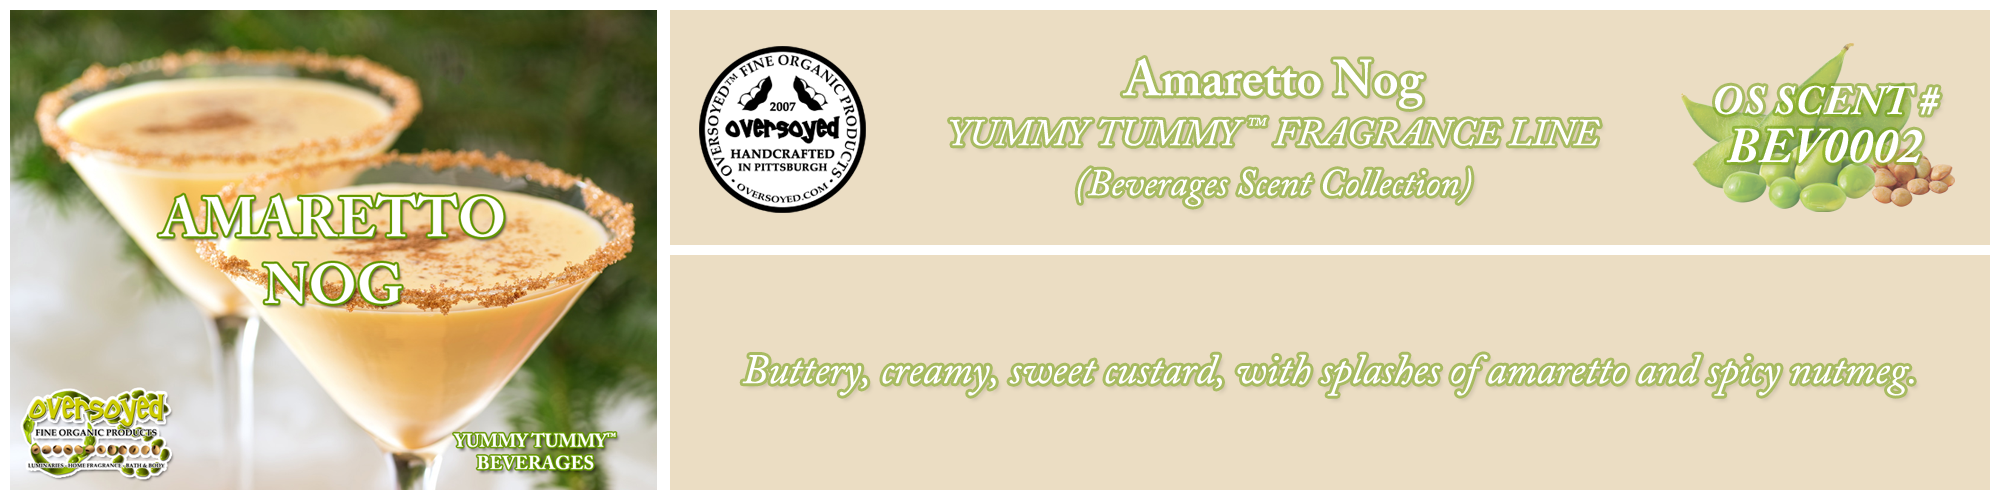 Amaretto Nog Handcrafted Products Collection